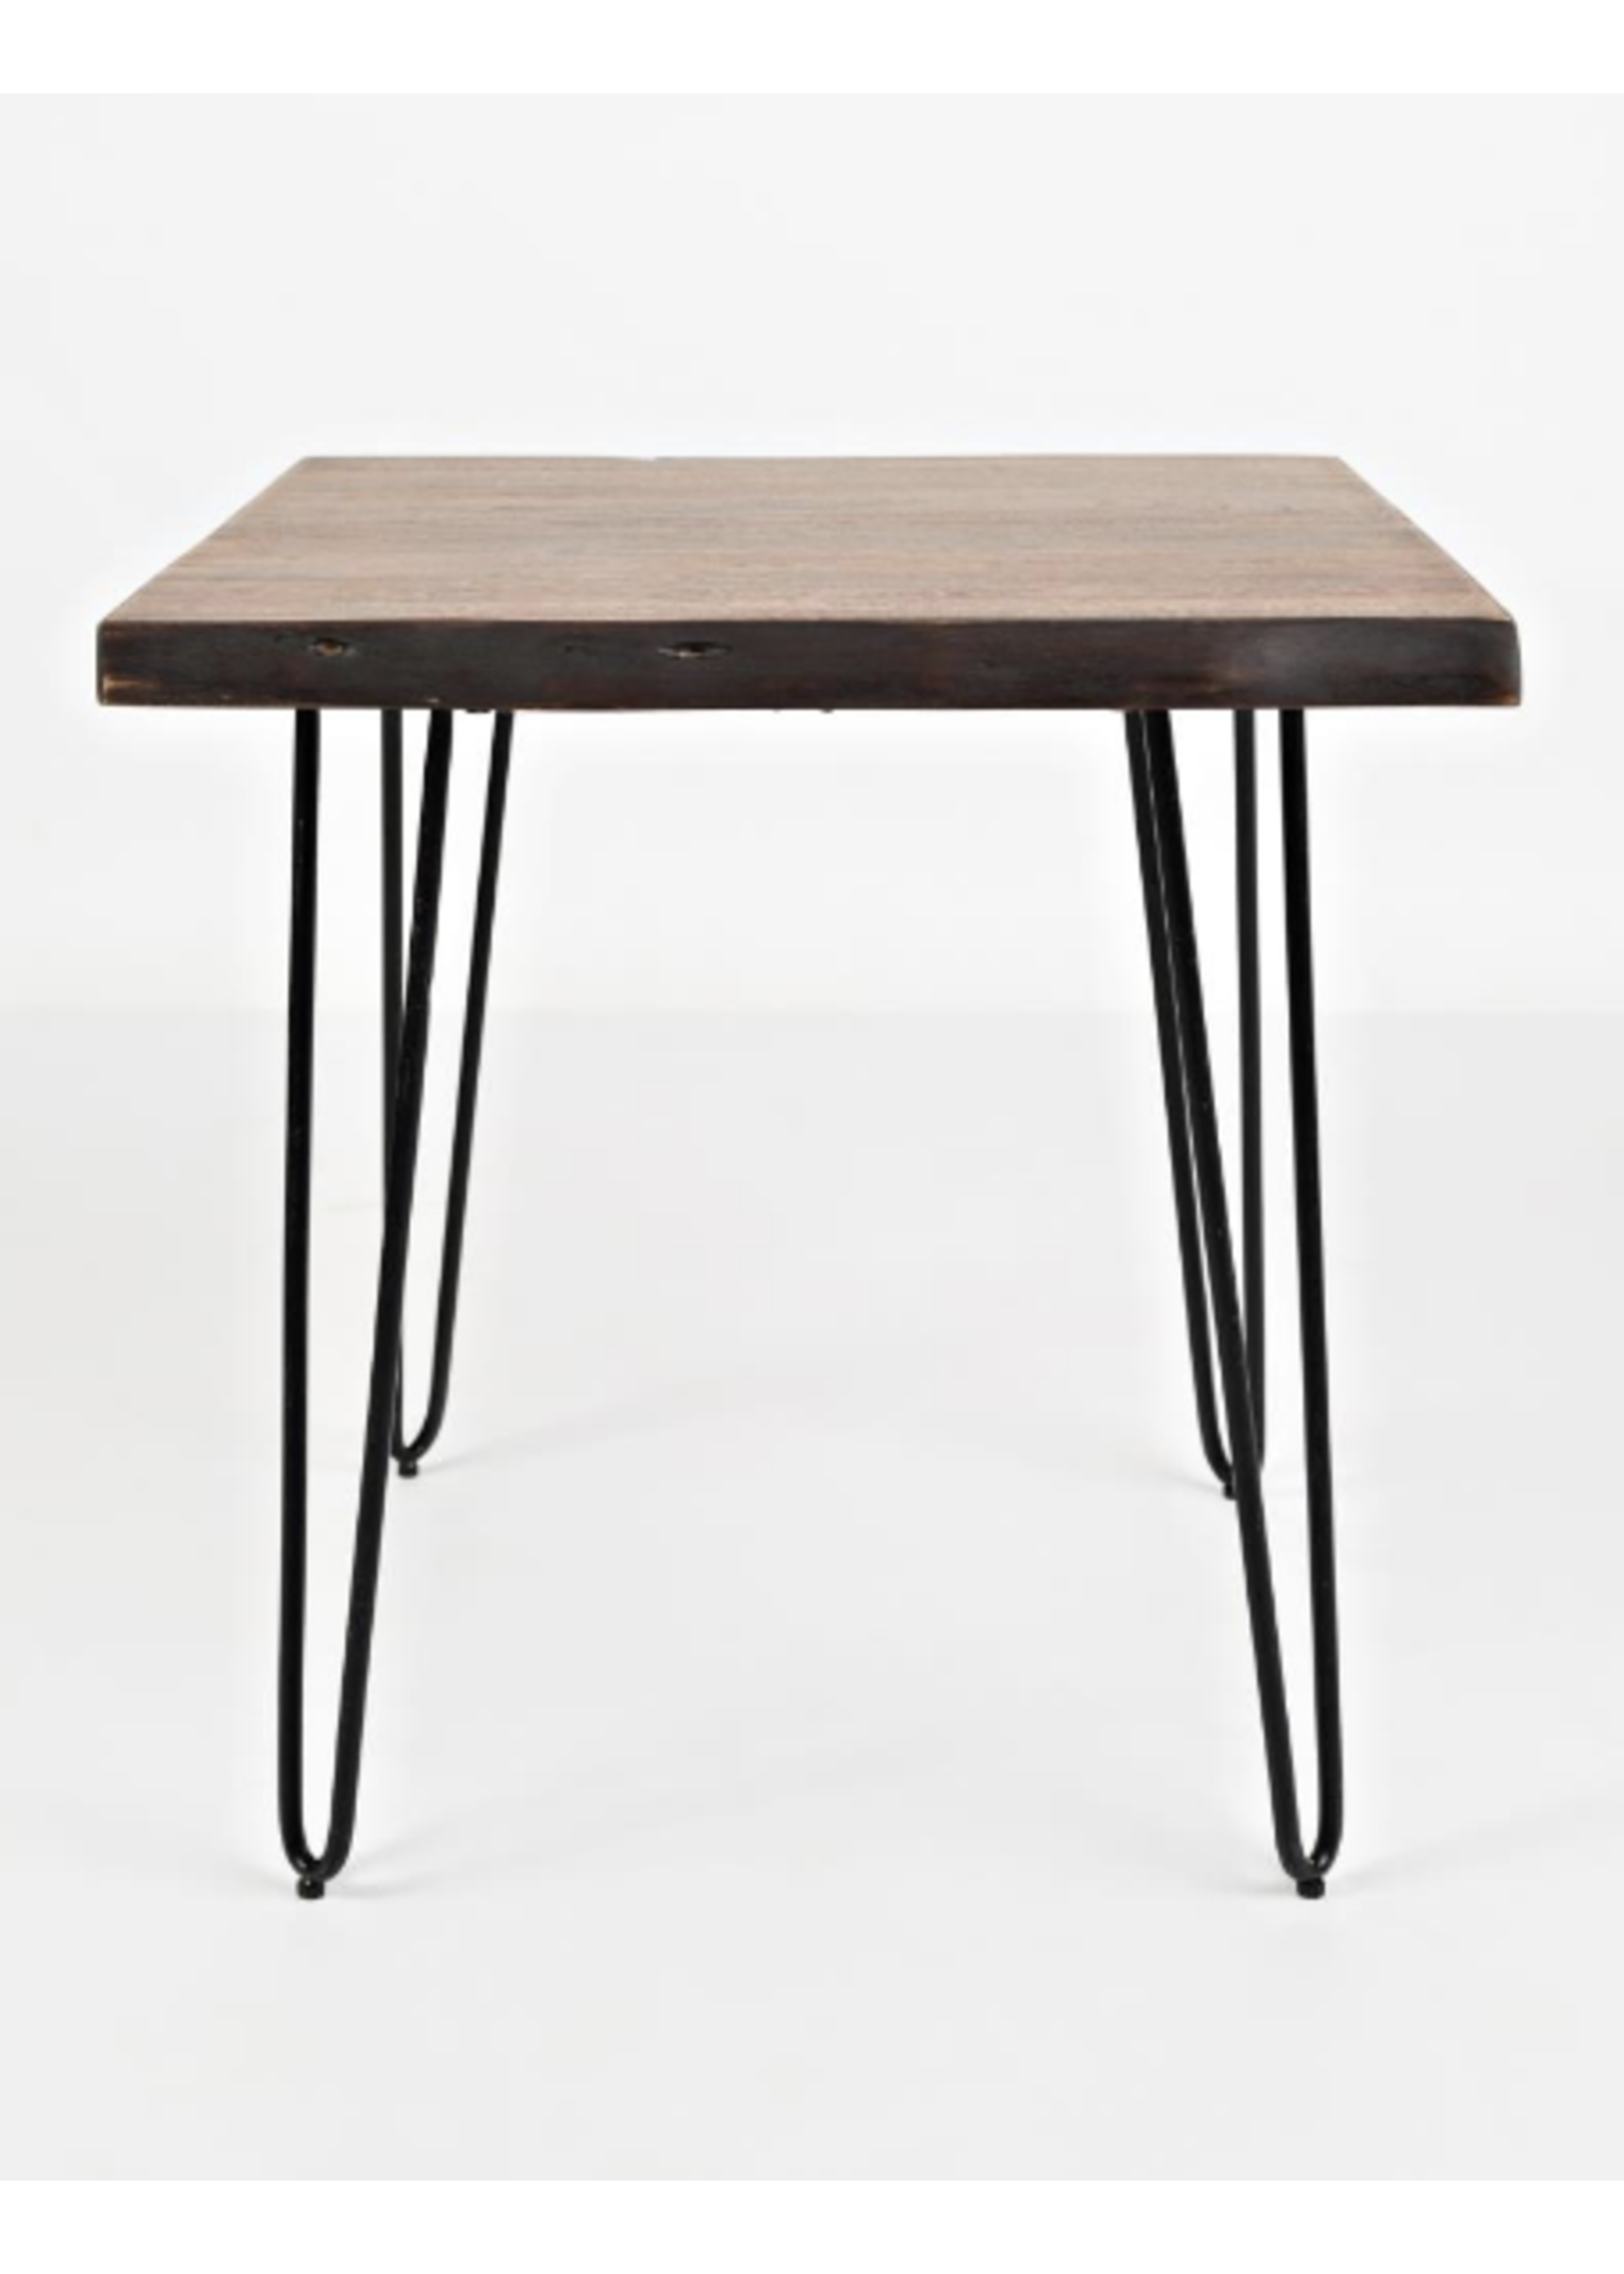 New Chestnut End Table (JO 1780-3)